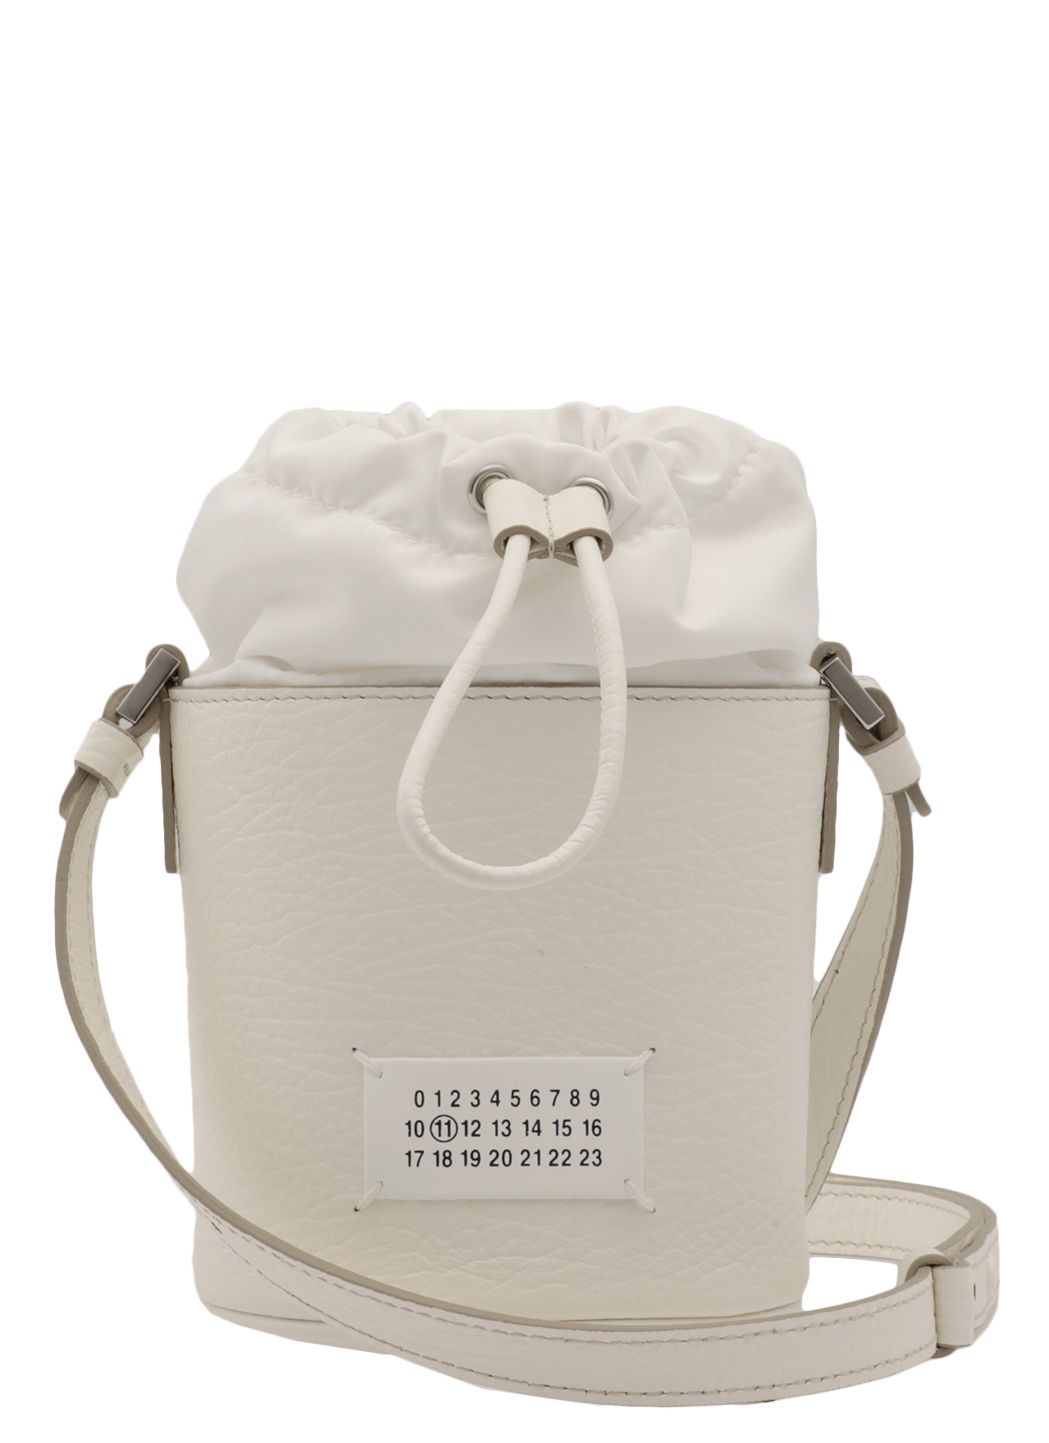 Pebbled leather mini bucket bag